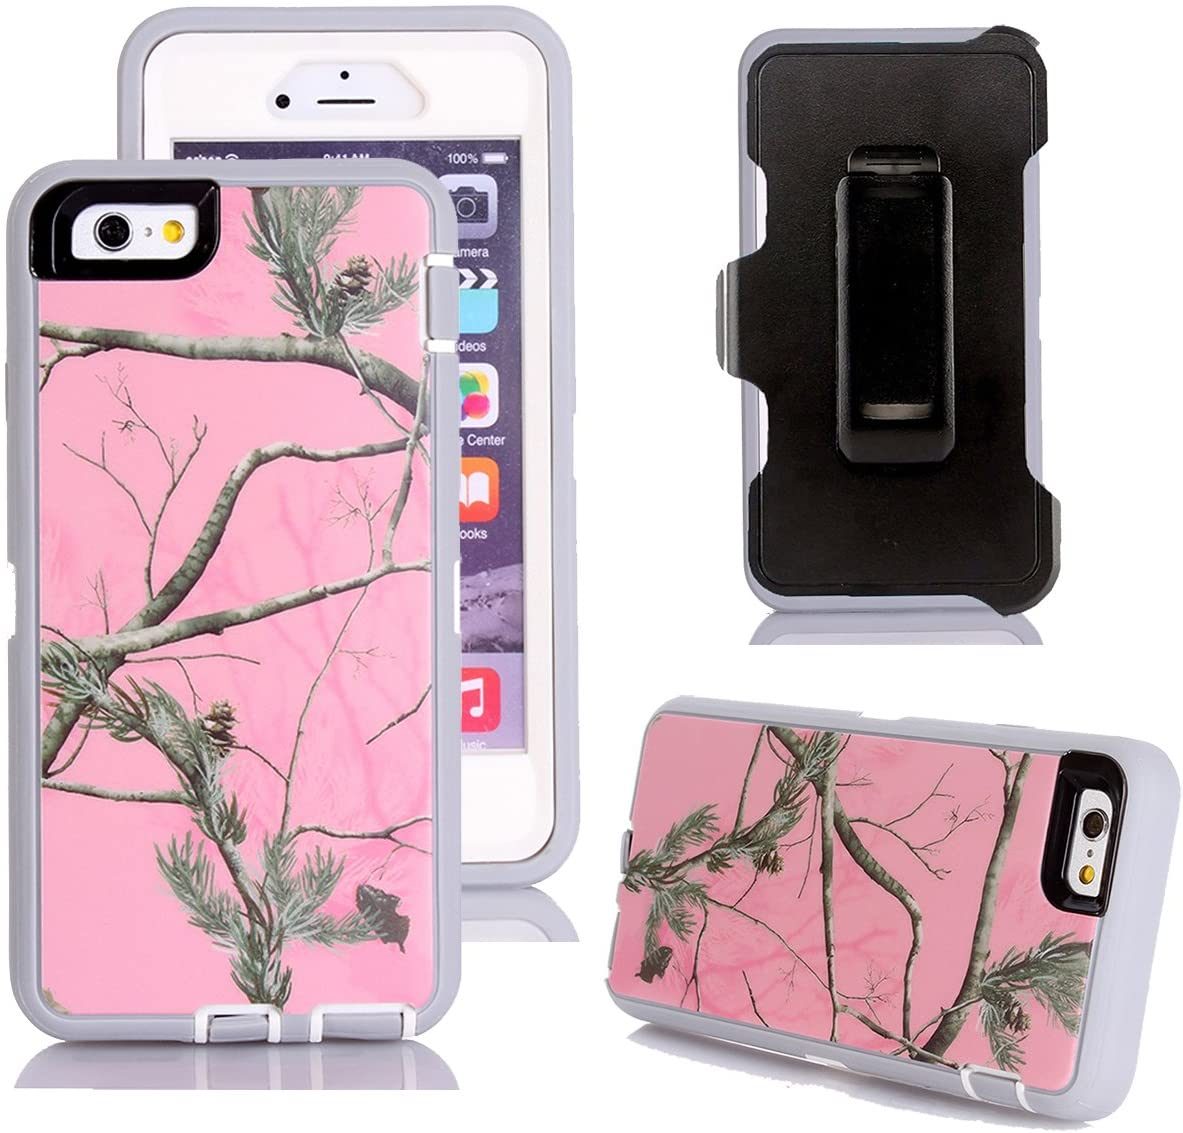 iPhone 6s Plus Case, Harsel Defender Series Heavy Duty Tree Camouflage Impact Tough Armor Hybrid Military w/Belt Clip Screen Protector Case Cover for iPhone 6s Plus/iPhone 6 Plus (Pink/Tree)